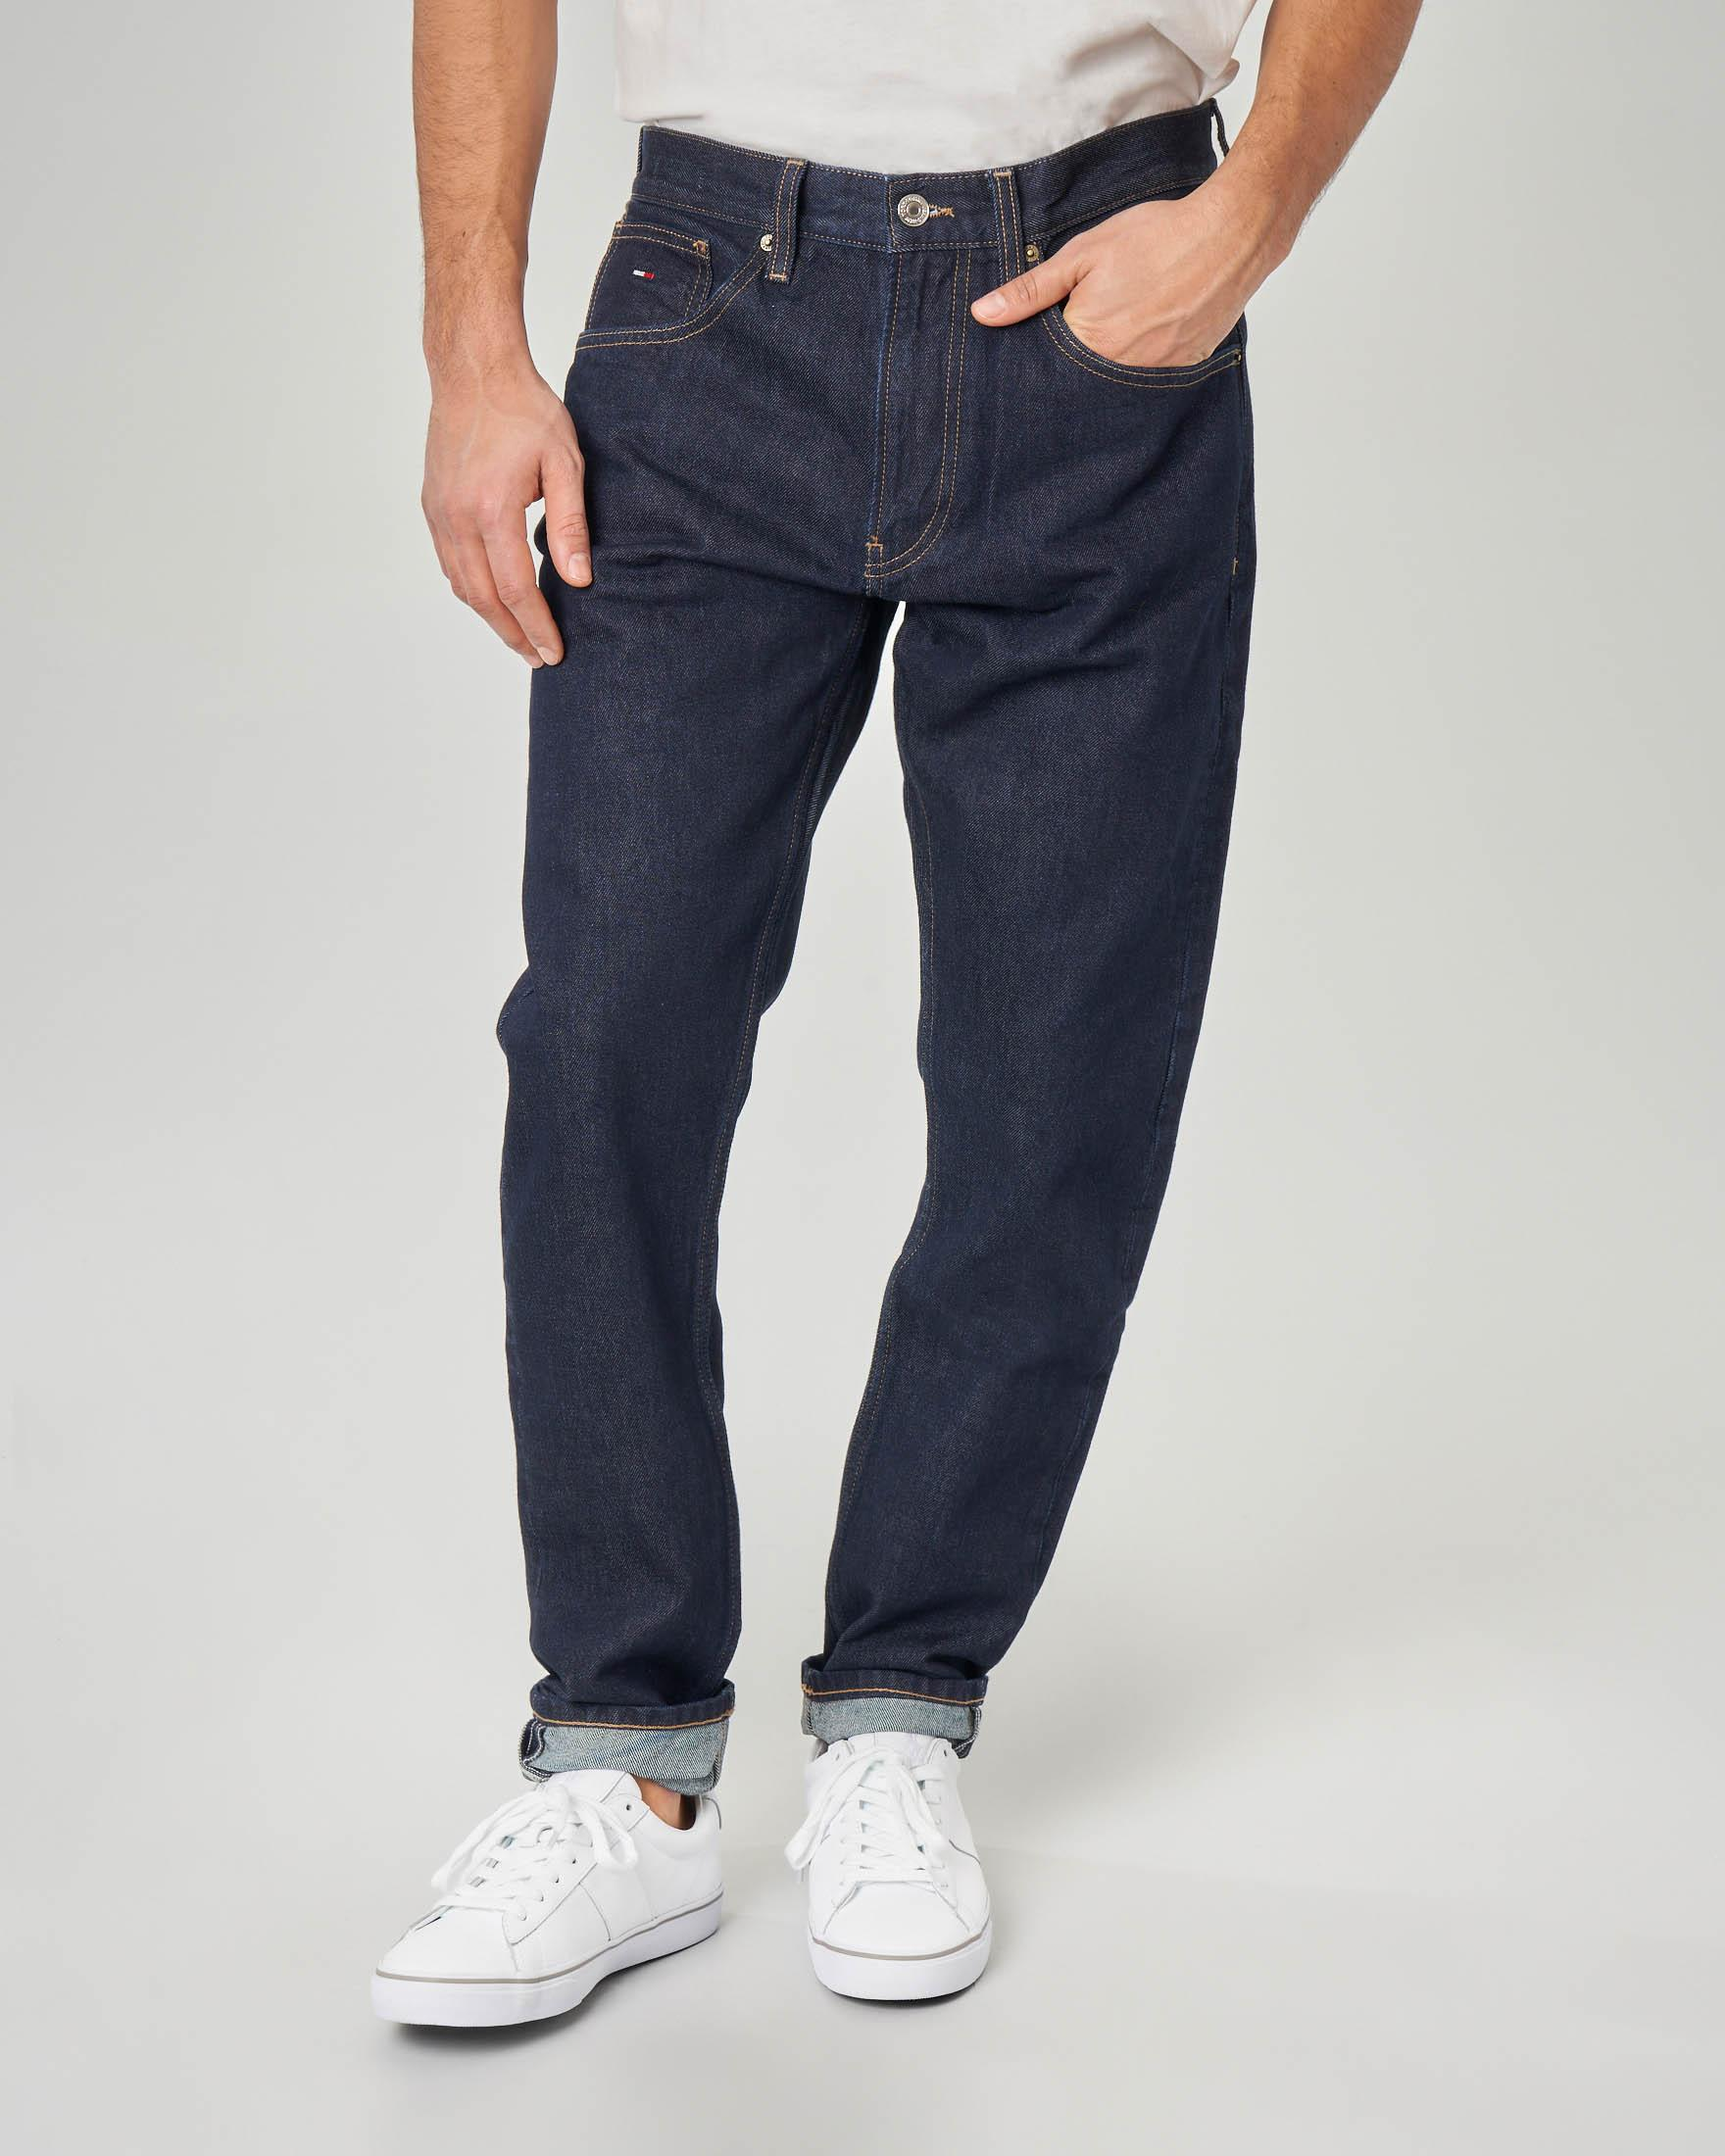 Jeans tapered lavaggio blu scuro